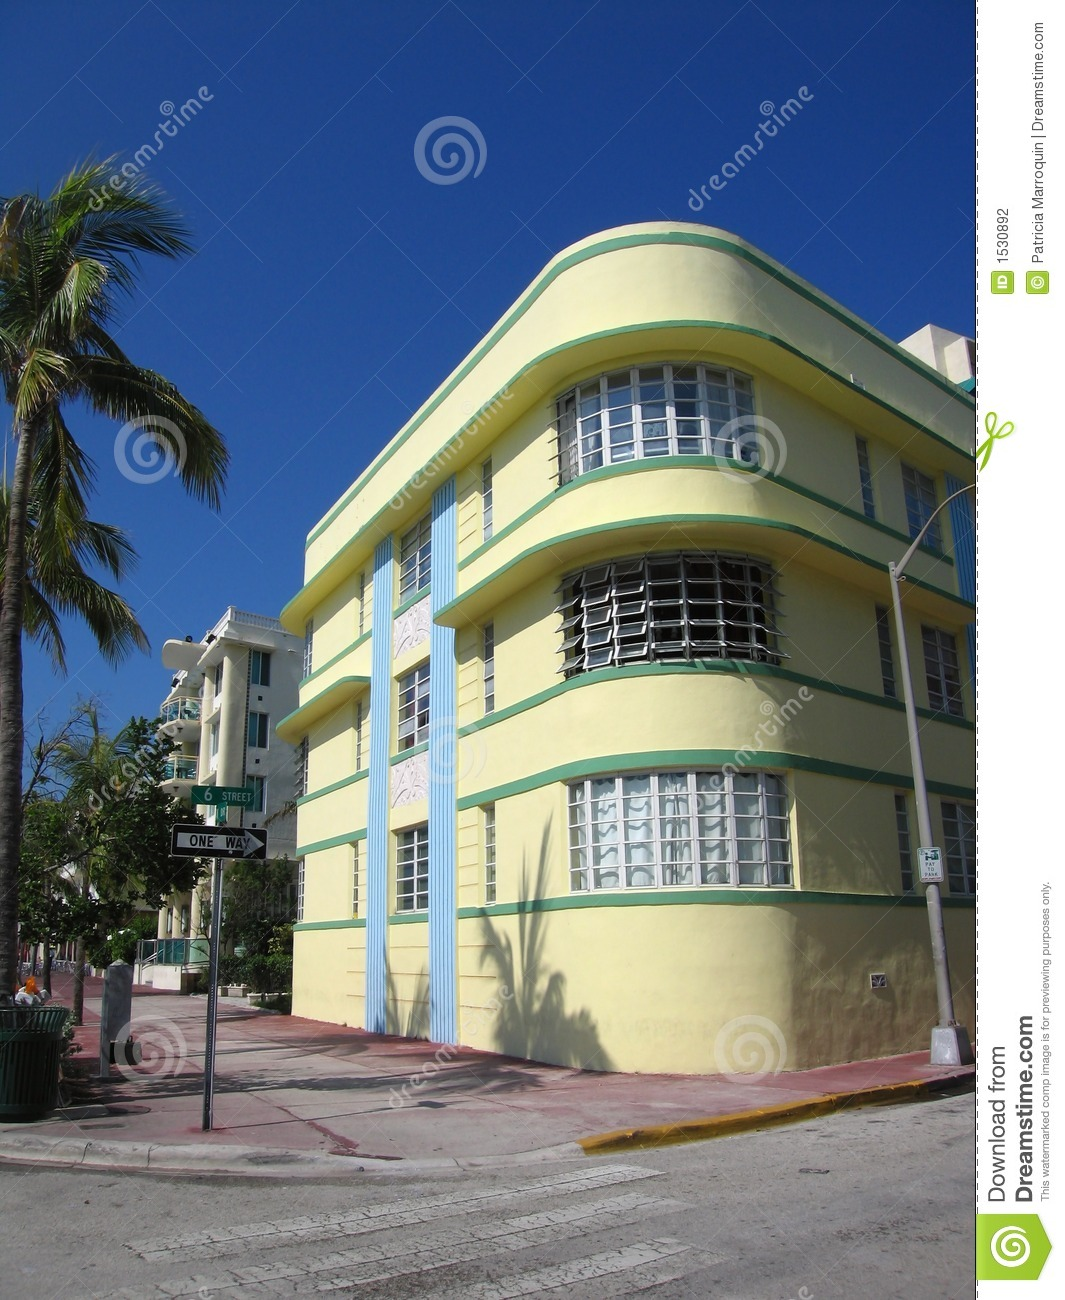 south beach art deco building stock photo image of tropical south